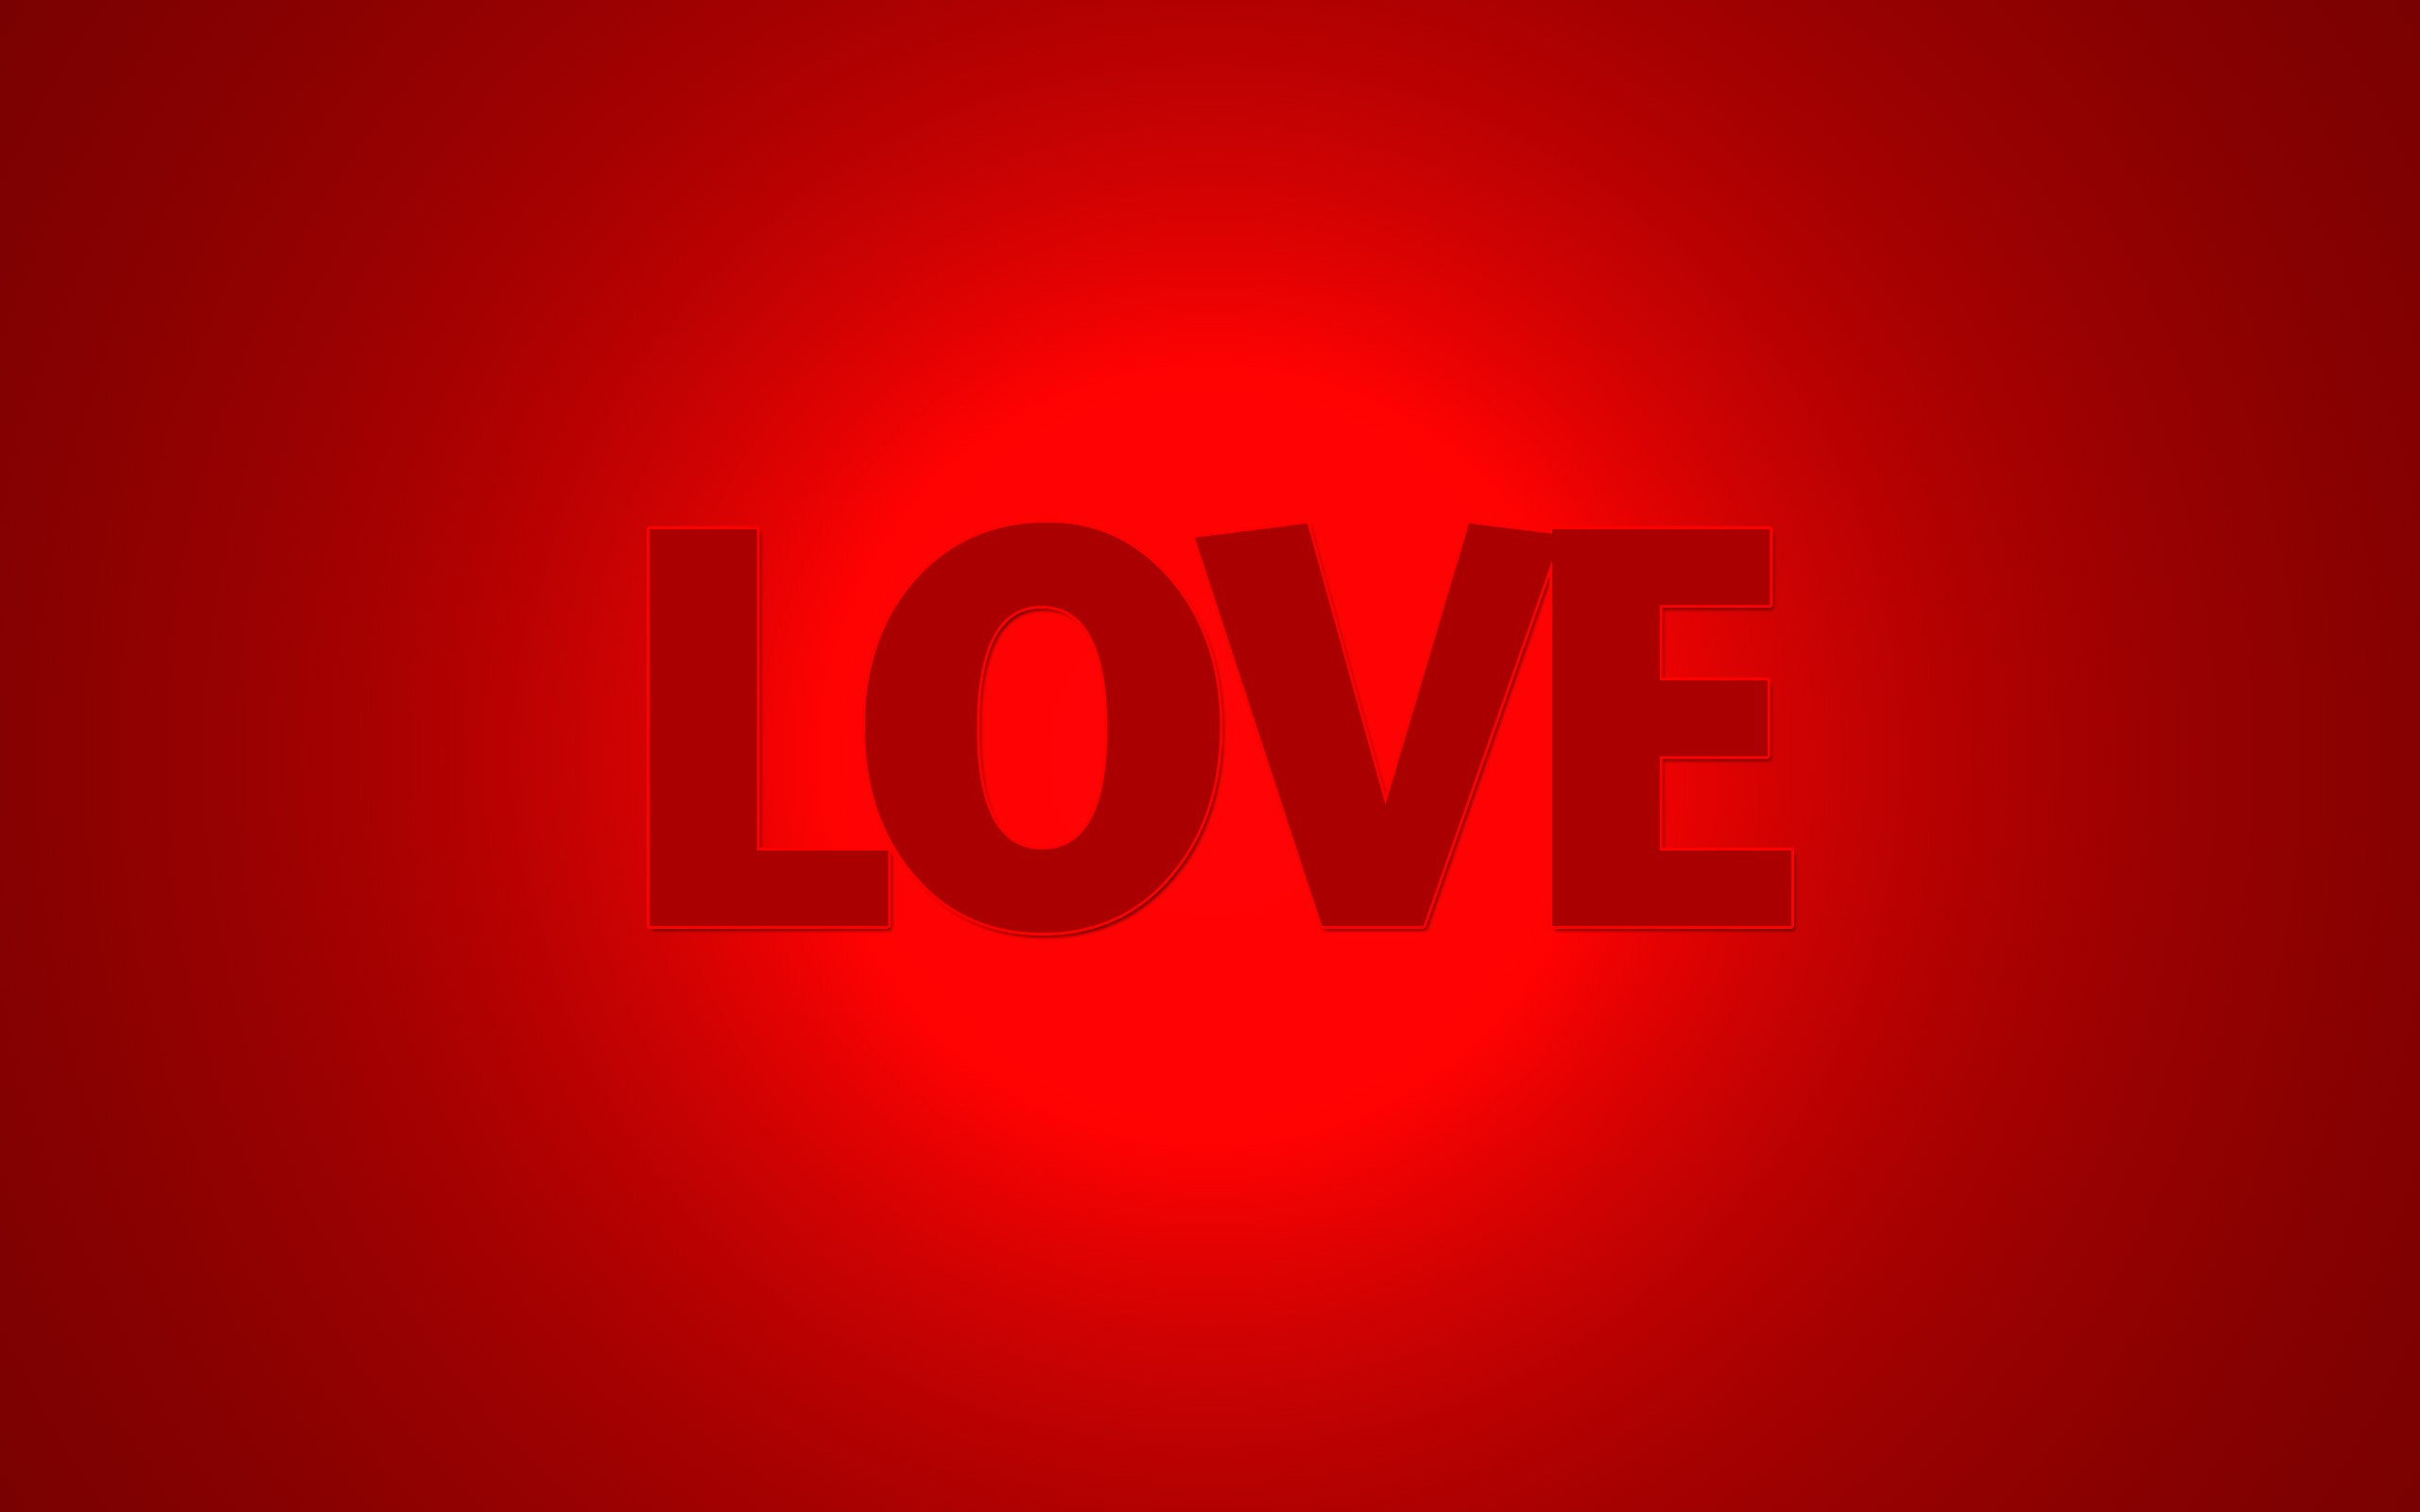 Pure Love Red Background   New HD Wallpapers 2560x1600